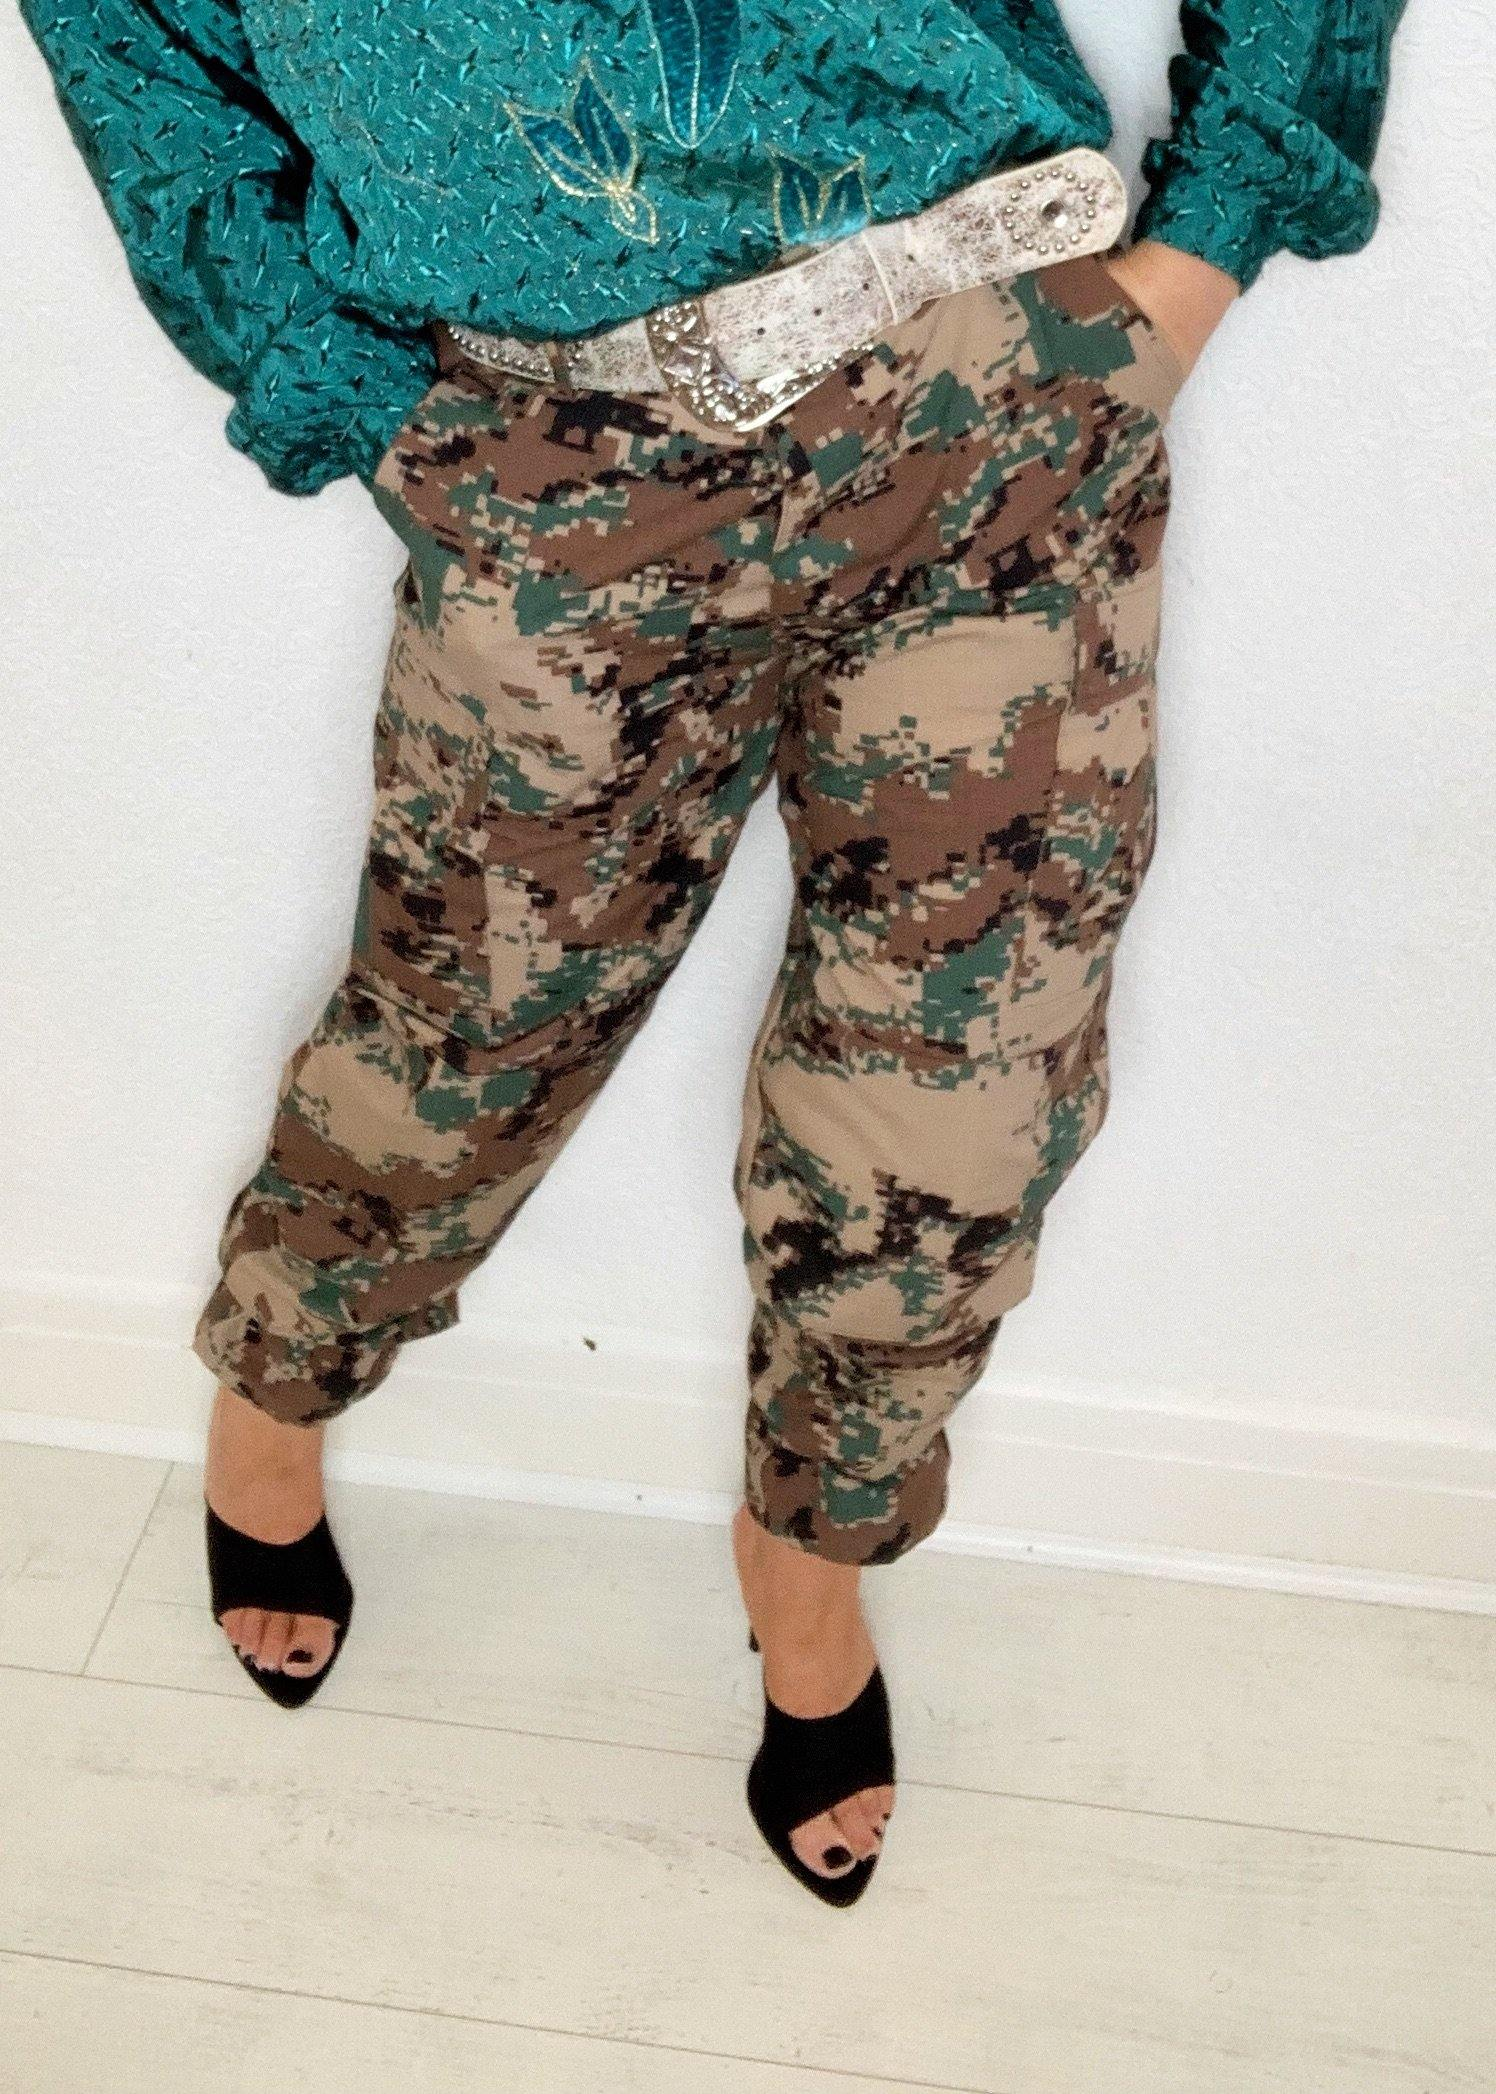 - ONE OF A KIND - Vintage High Waist Military Print Pants Trousers